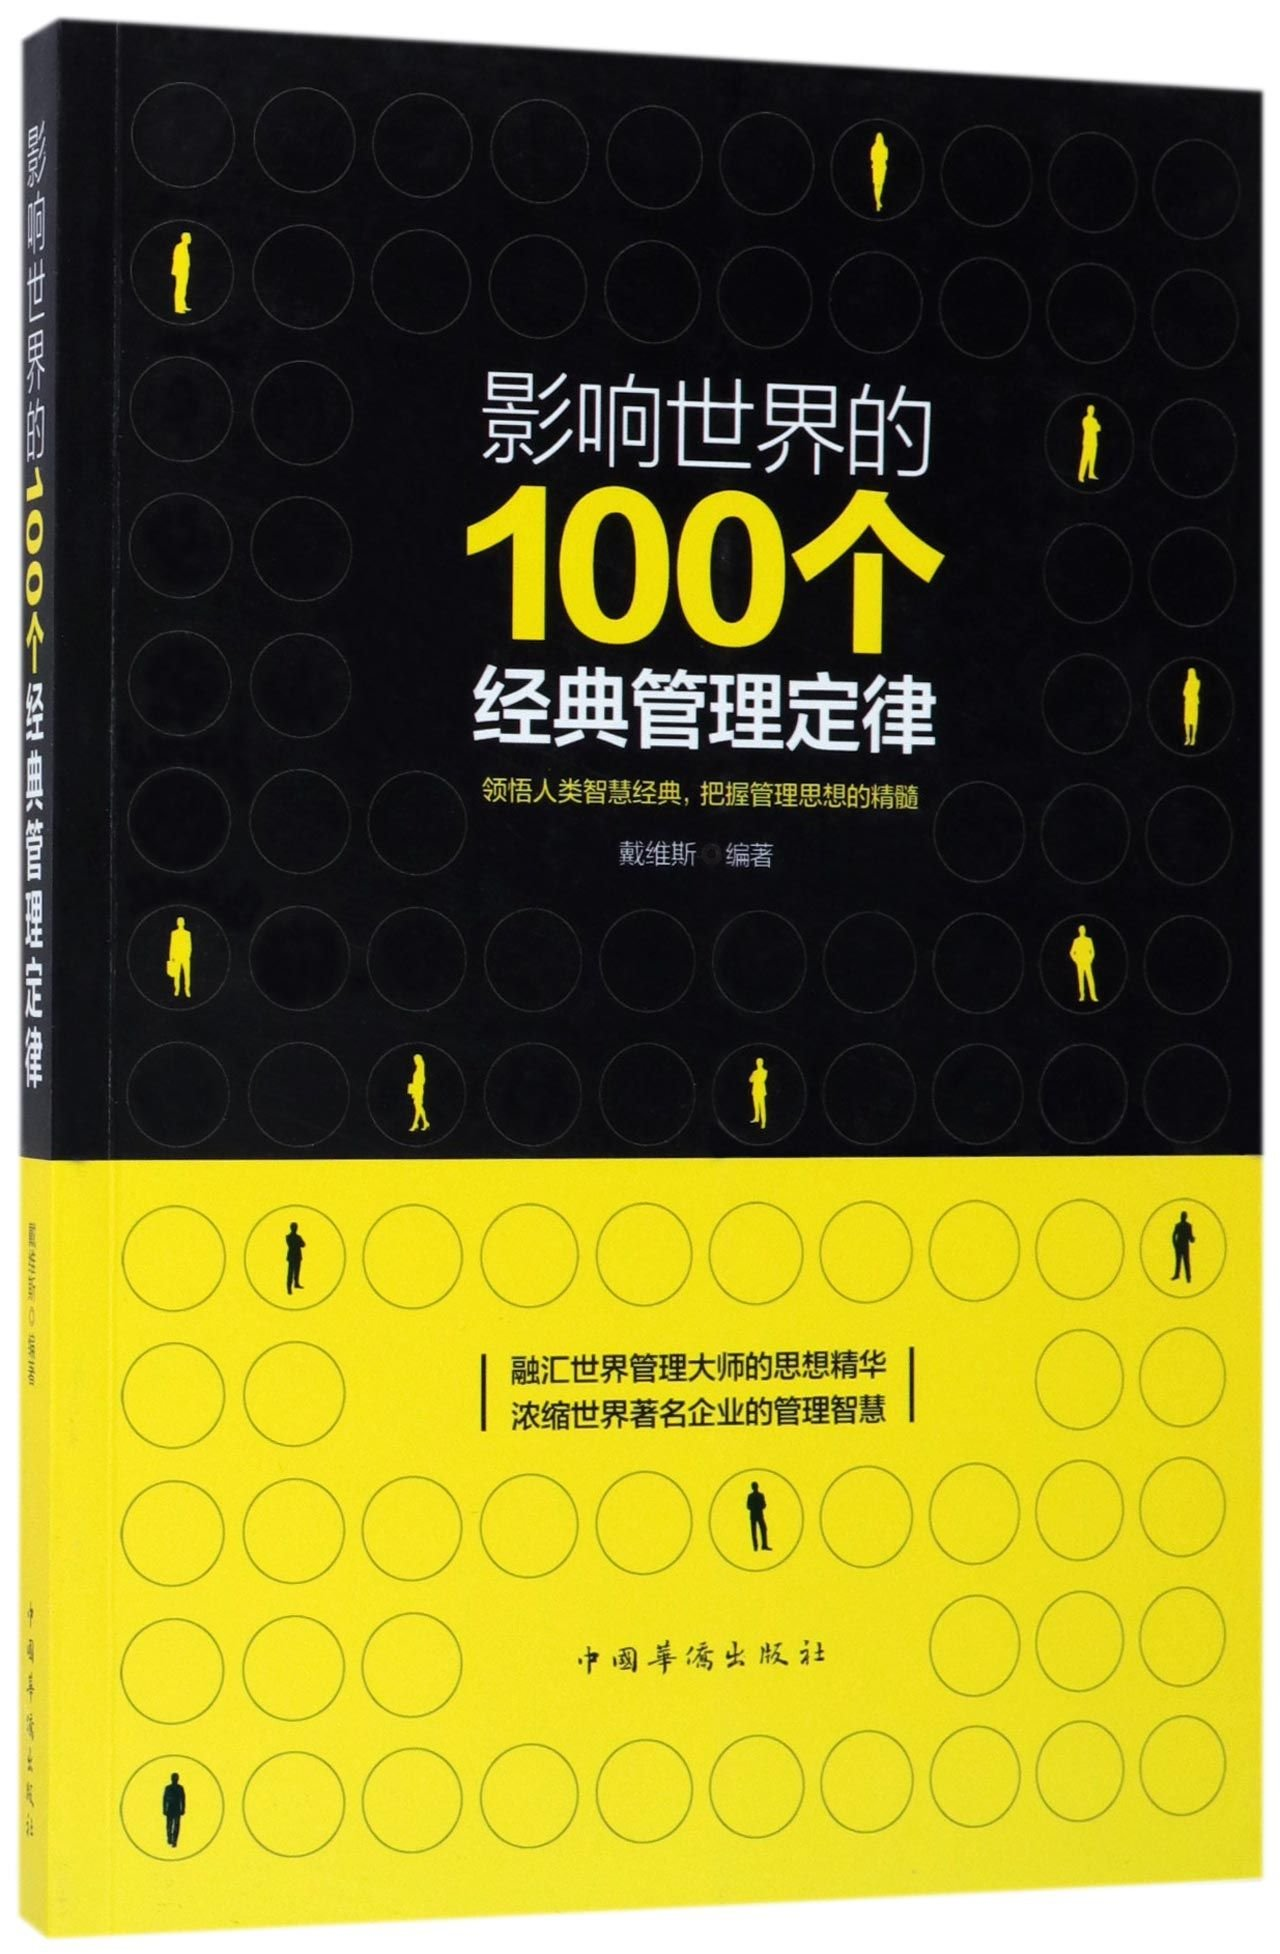 100 Classic Management Laws That Affect The World (Chinese